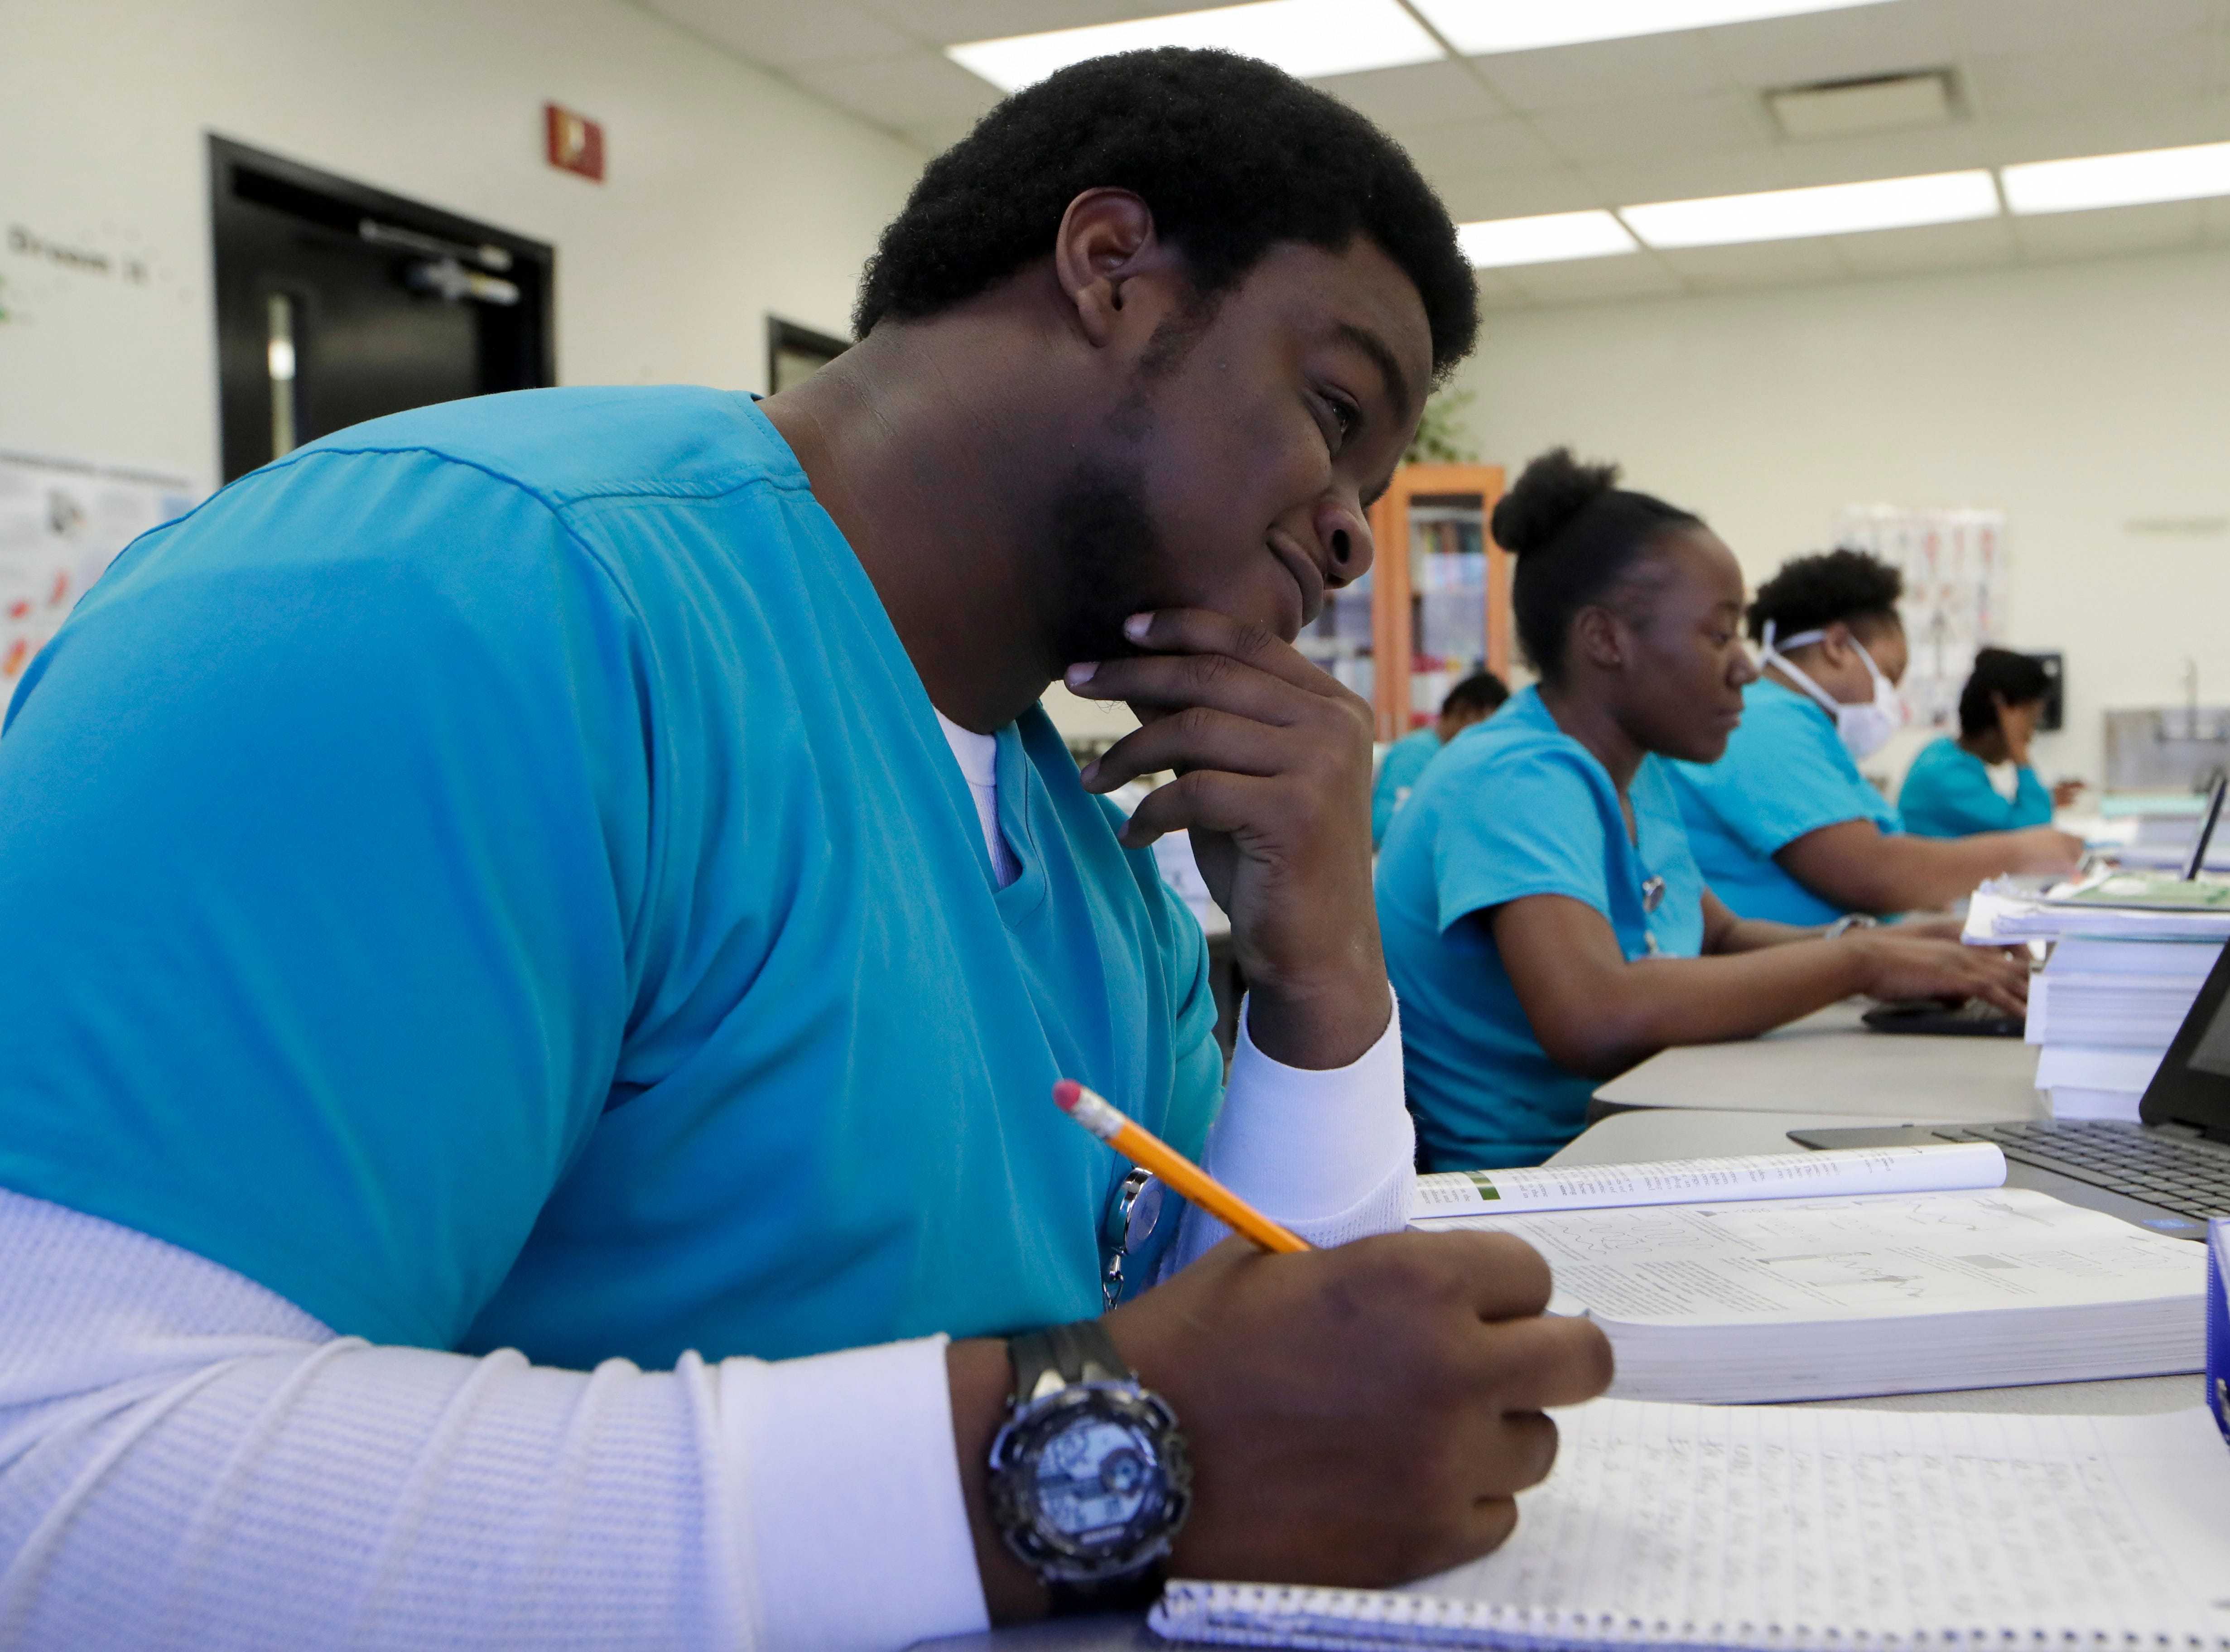 Medical assistant student Levonte White takes notes in class Wednesday, Jan. 9, 2019 at Lively Technical Center which has been approved by the Leon County School Board to change it's name to Lively Technical College.